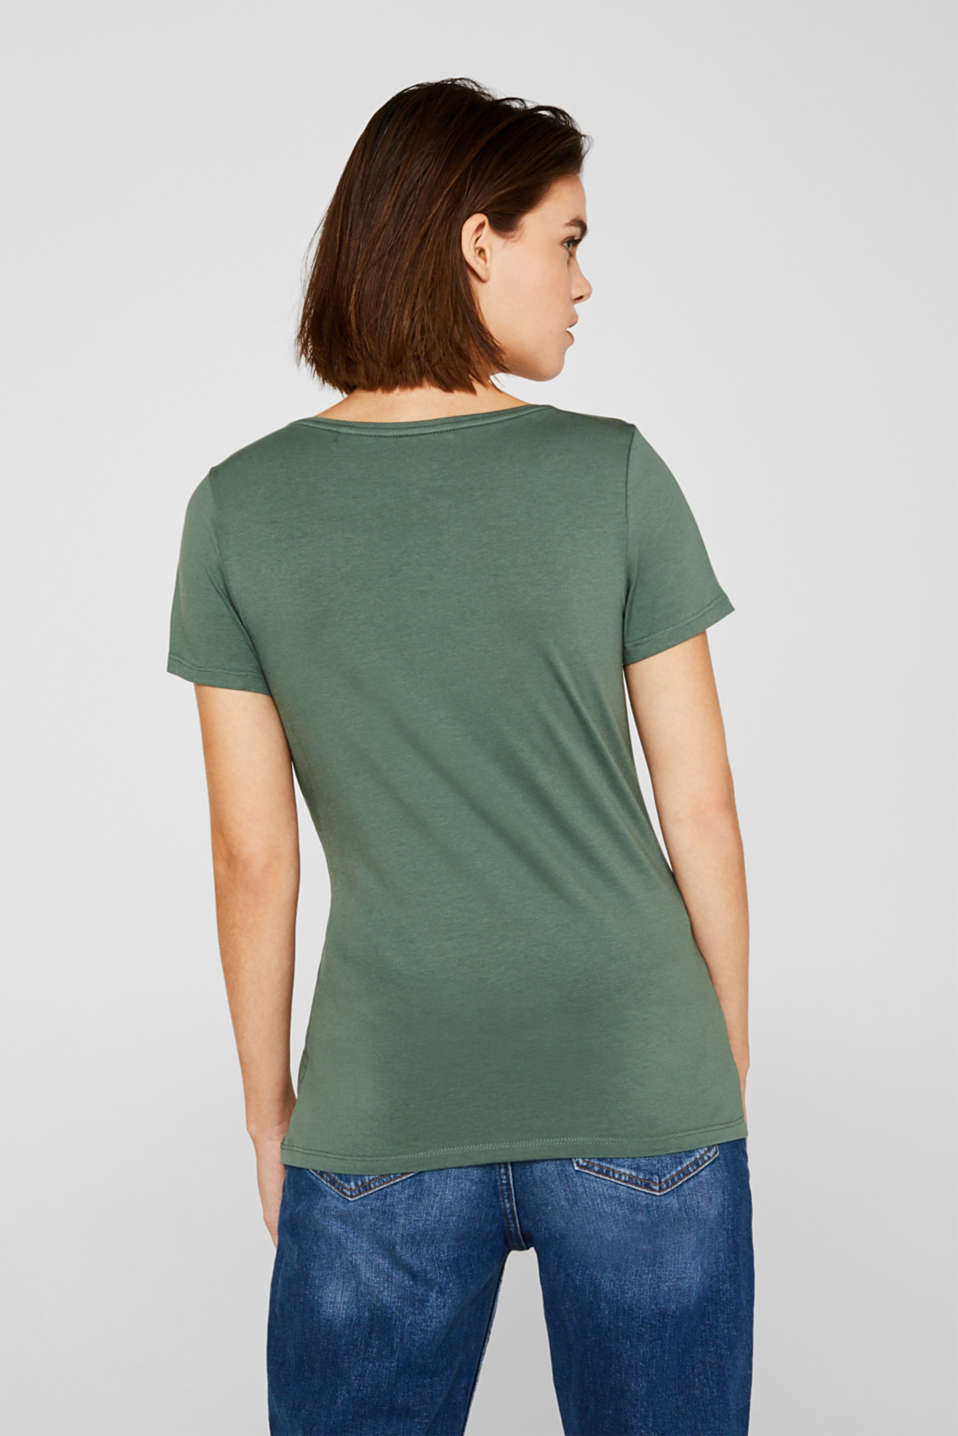 Stretch top with a large neckline, KHAKI GREEN 4, detail image number 3